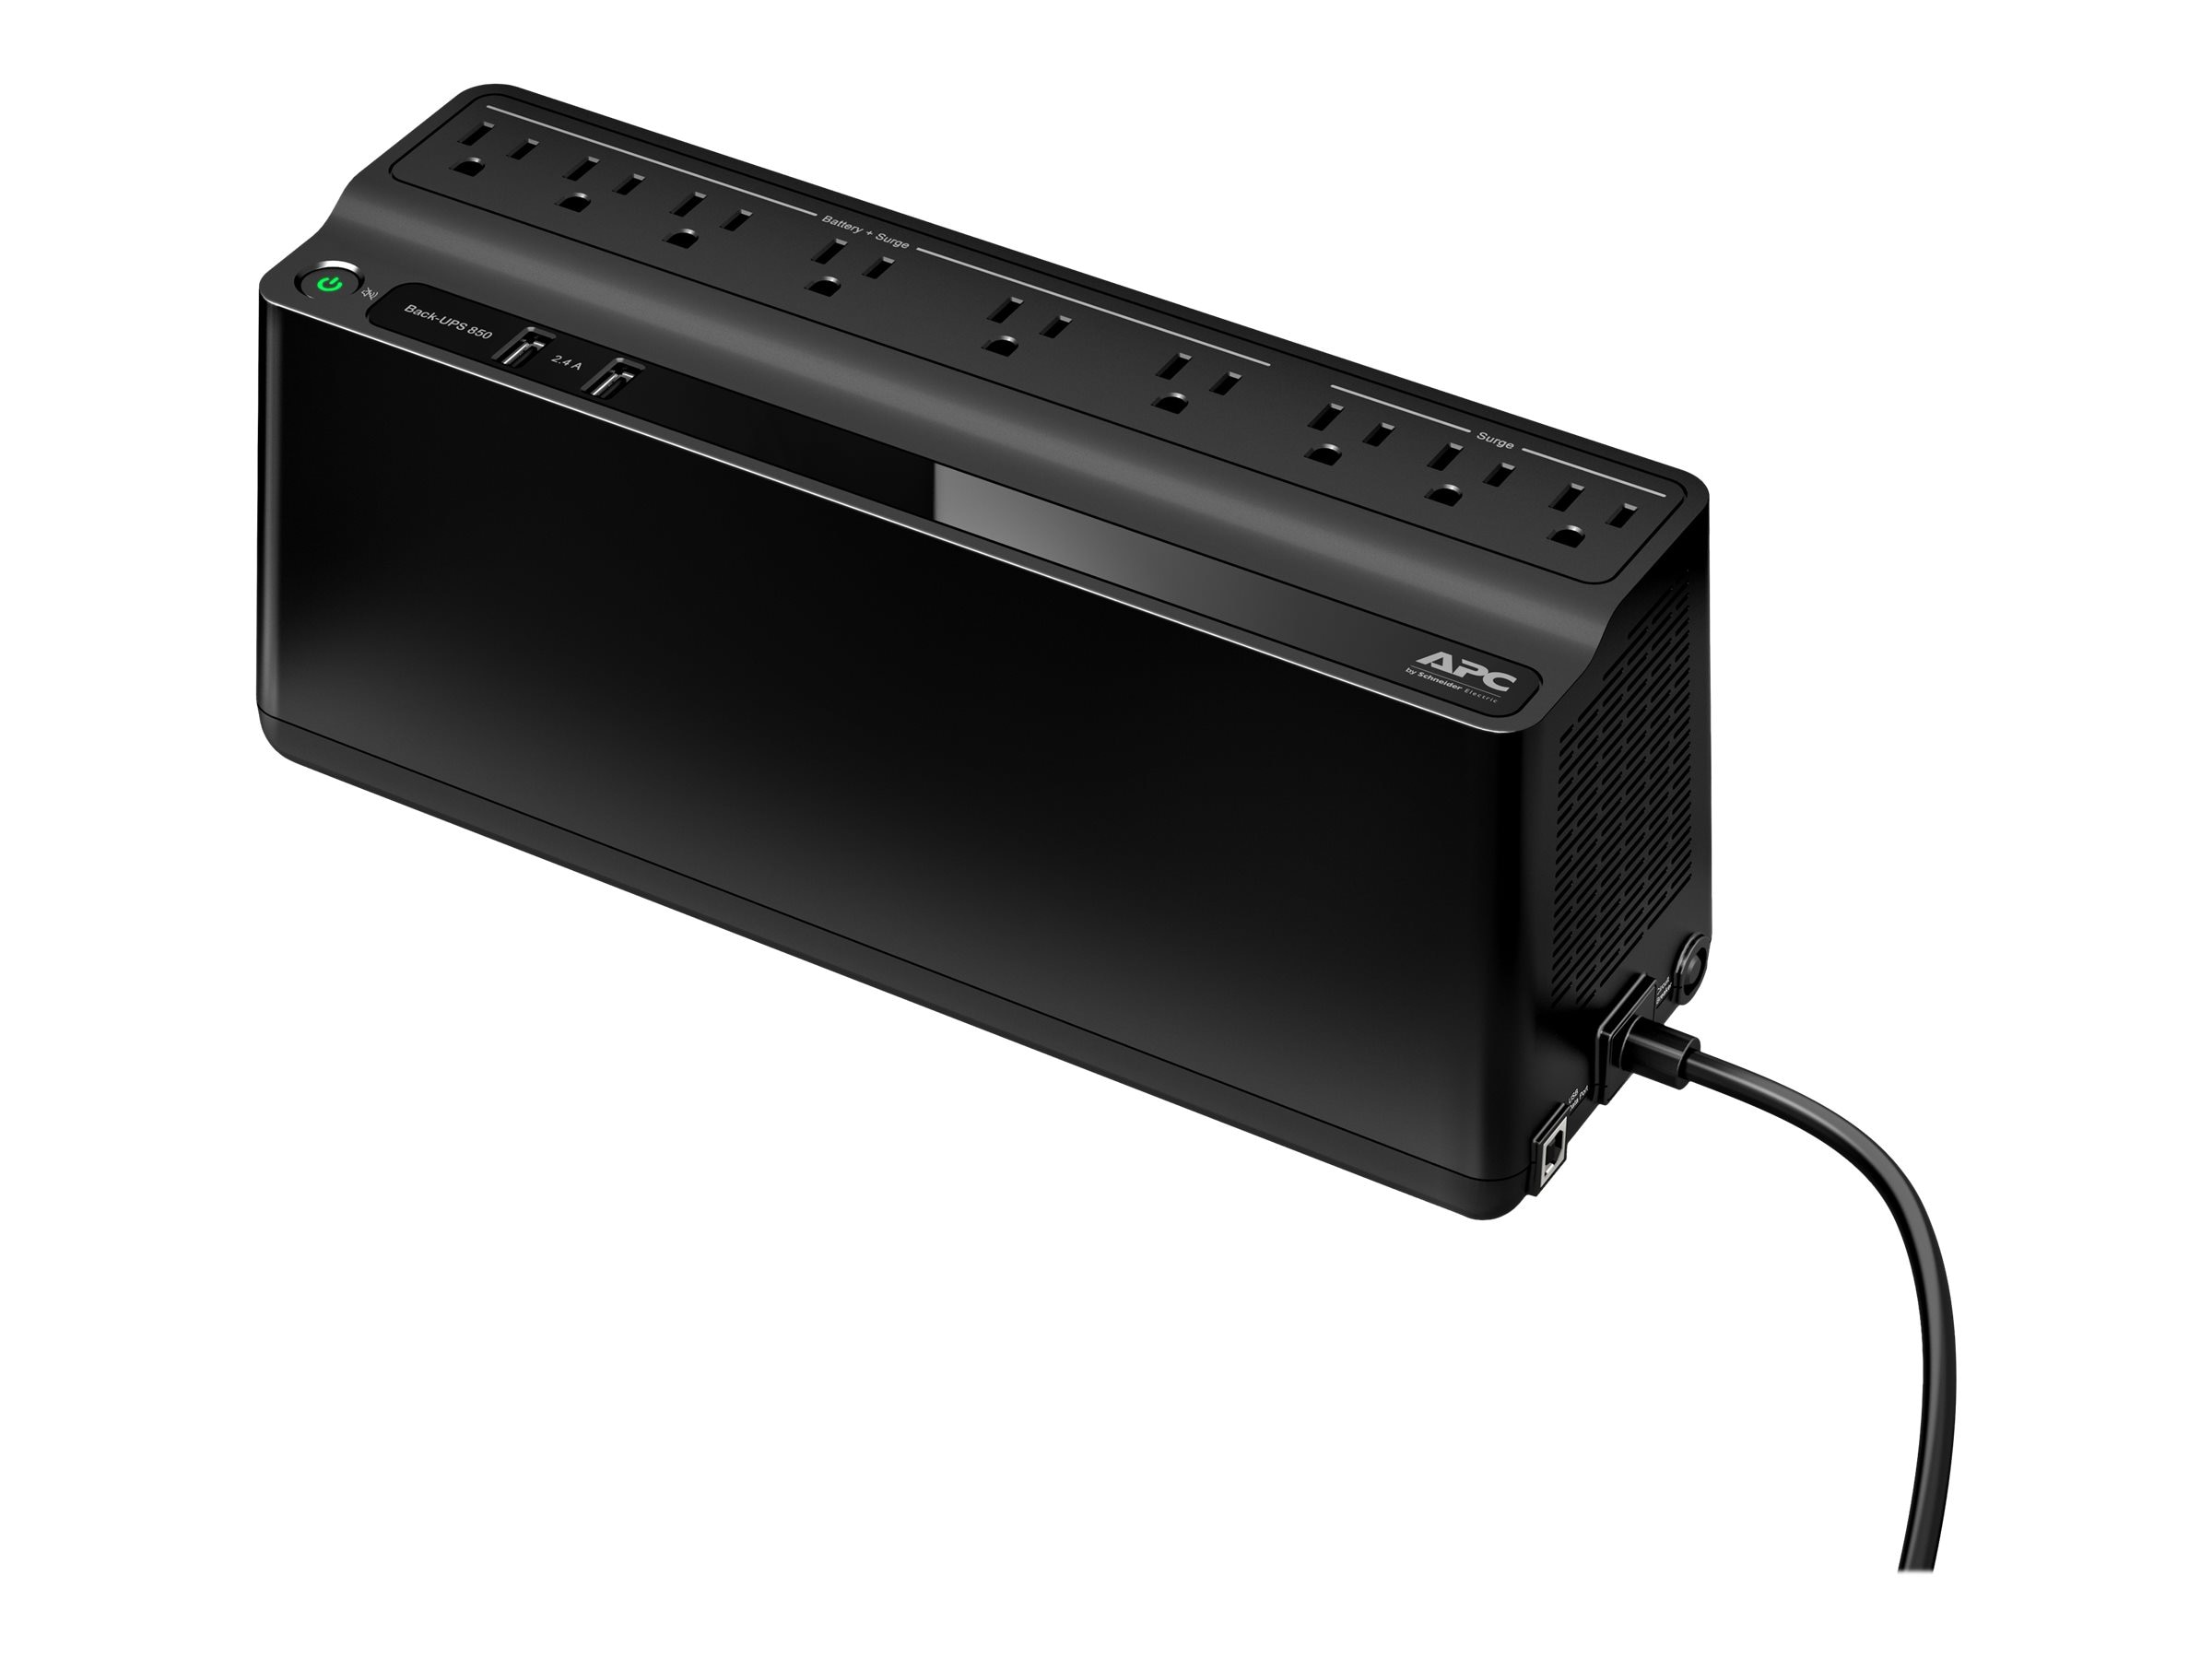 APC Back-UPS 850VA 450W 120V Standby 5-15P Input 5ft Rt-Angle Plug (9) 5-15R Outlets (2) USB Charging, BE850M2